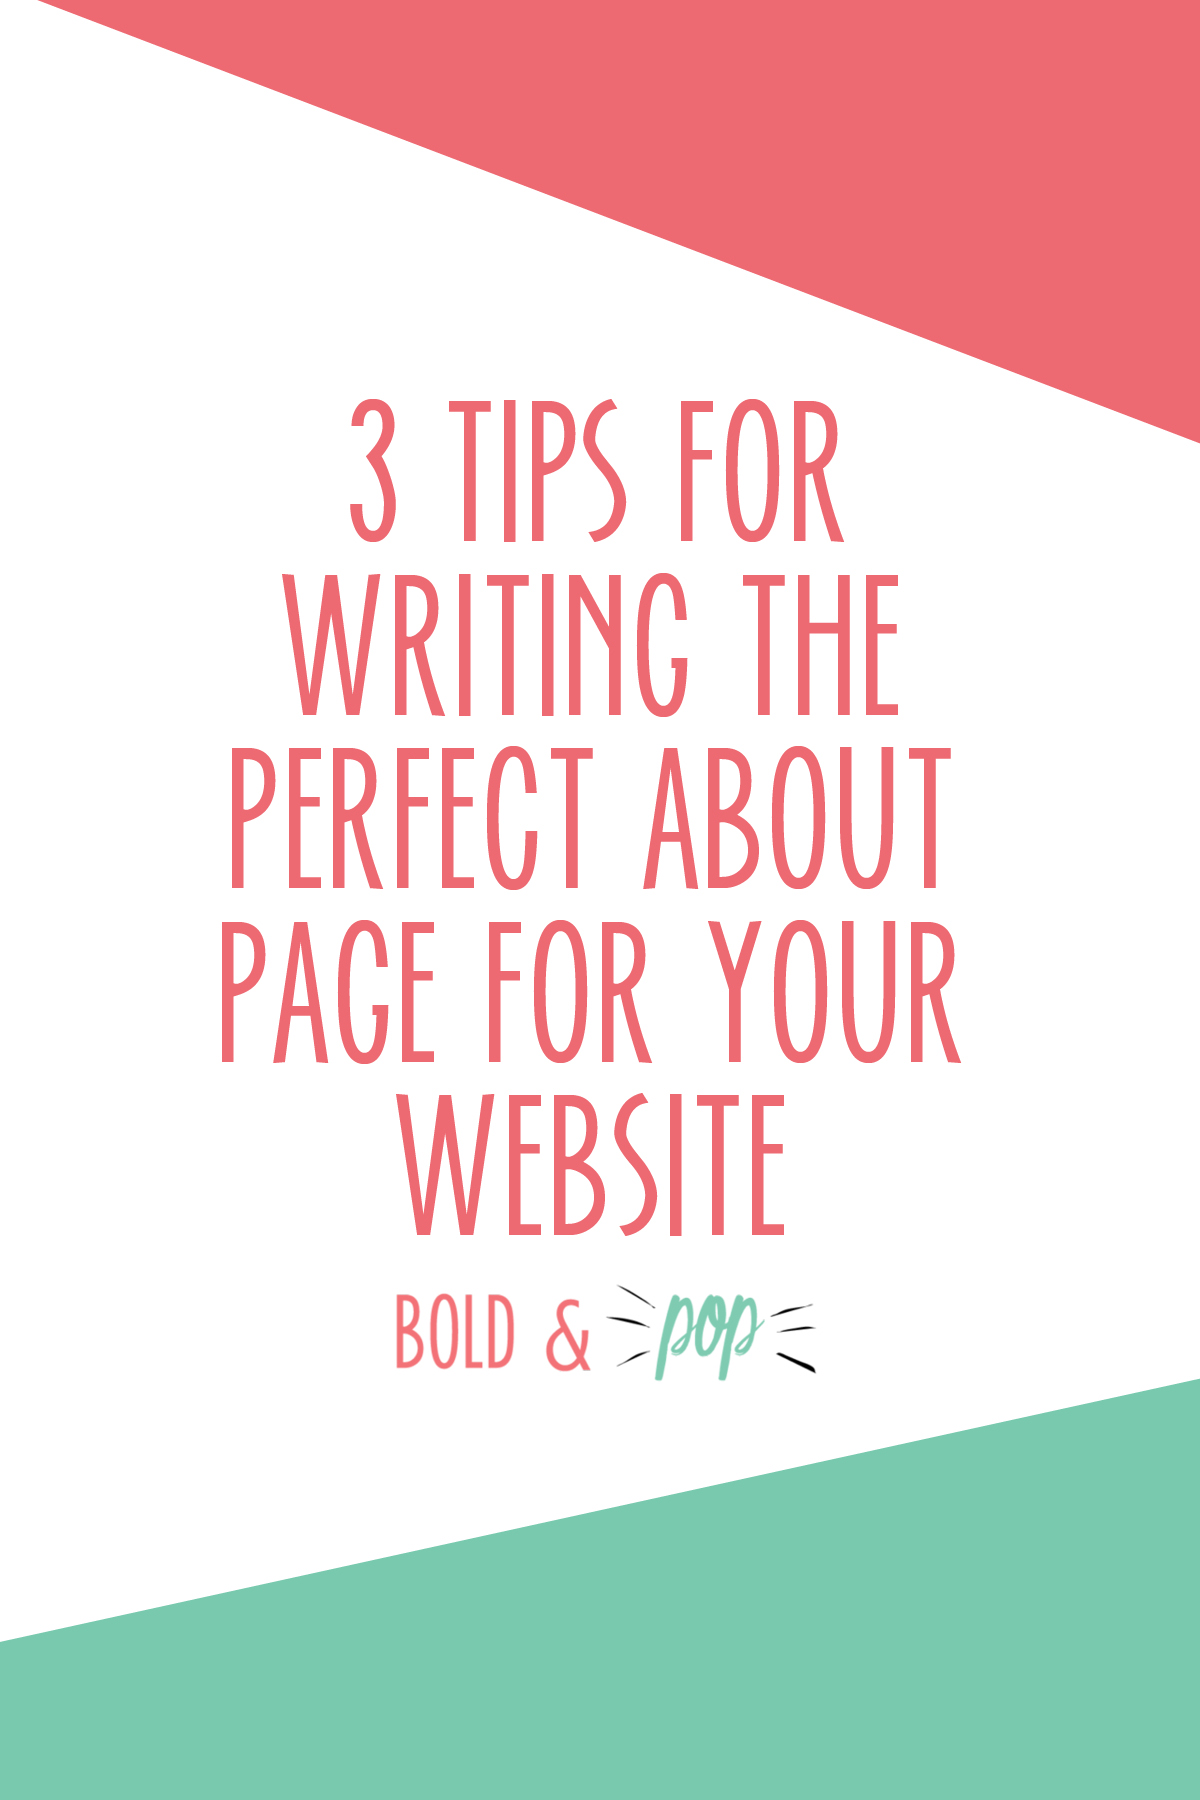 Bold & Pop :: 3 Tips For Writing the Perfect About Page